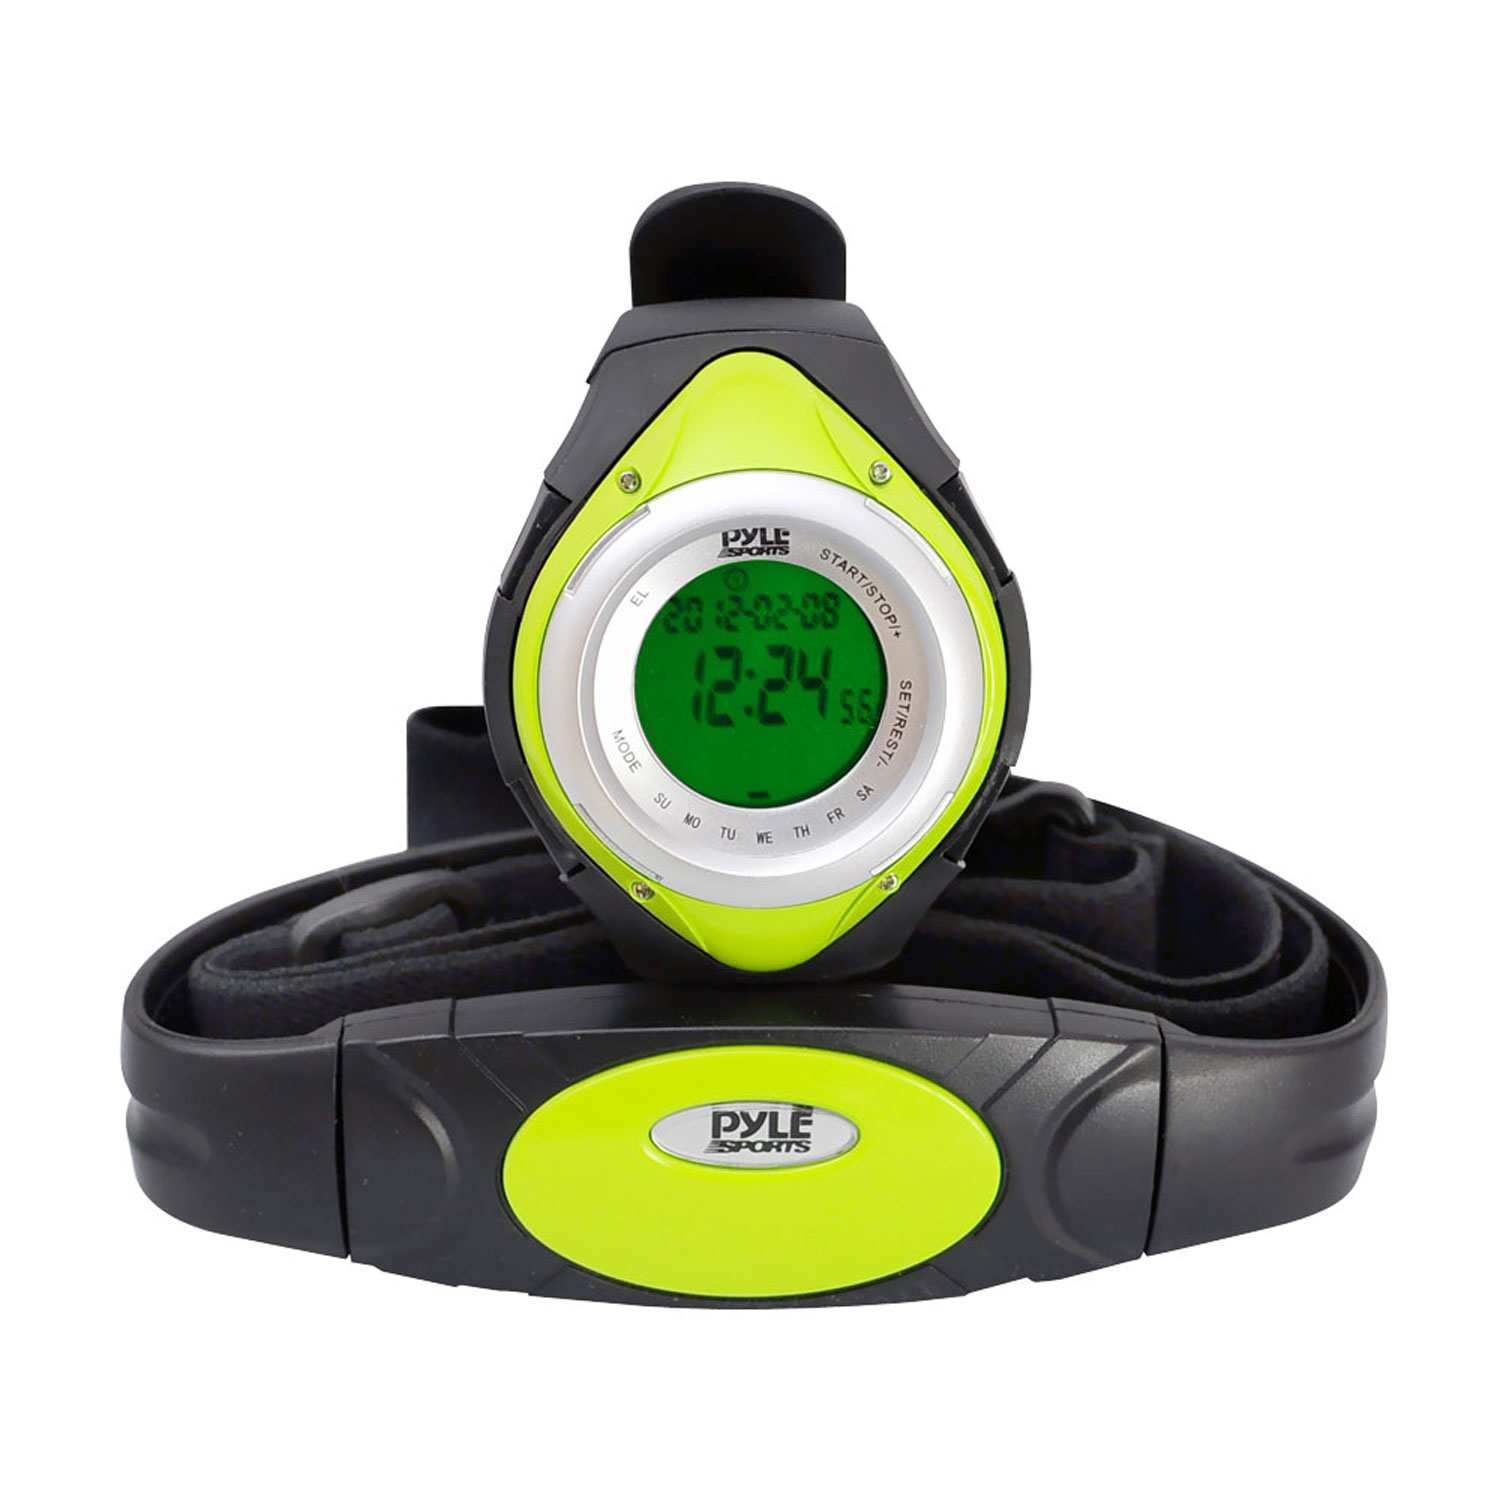 Pyle Heart Rate Monitor Watch W/Minimum, Average Heart Rate, Calorie Counter, and Target Zones(Green Color)